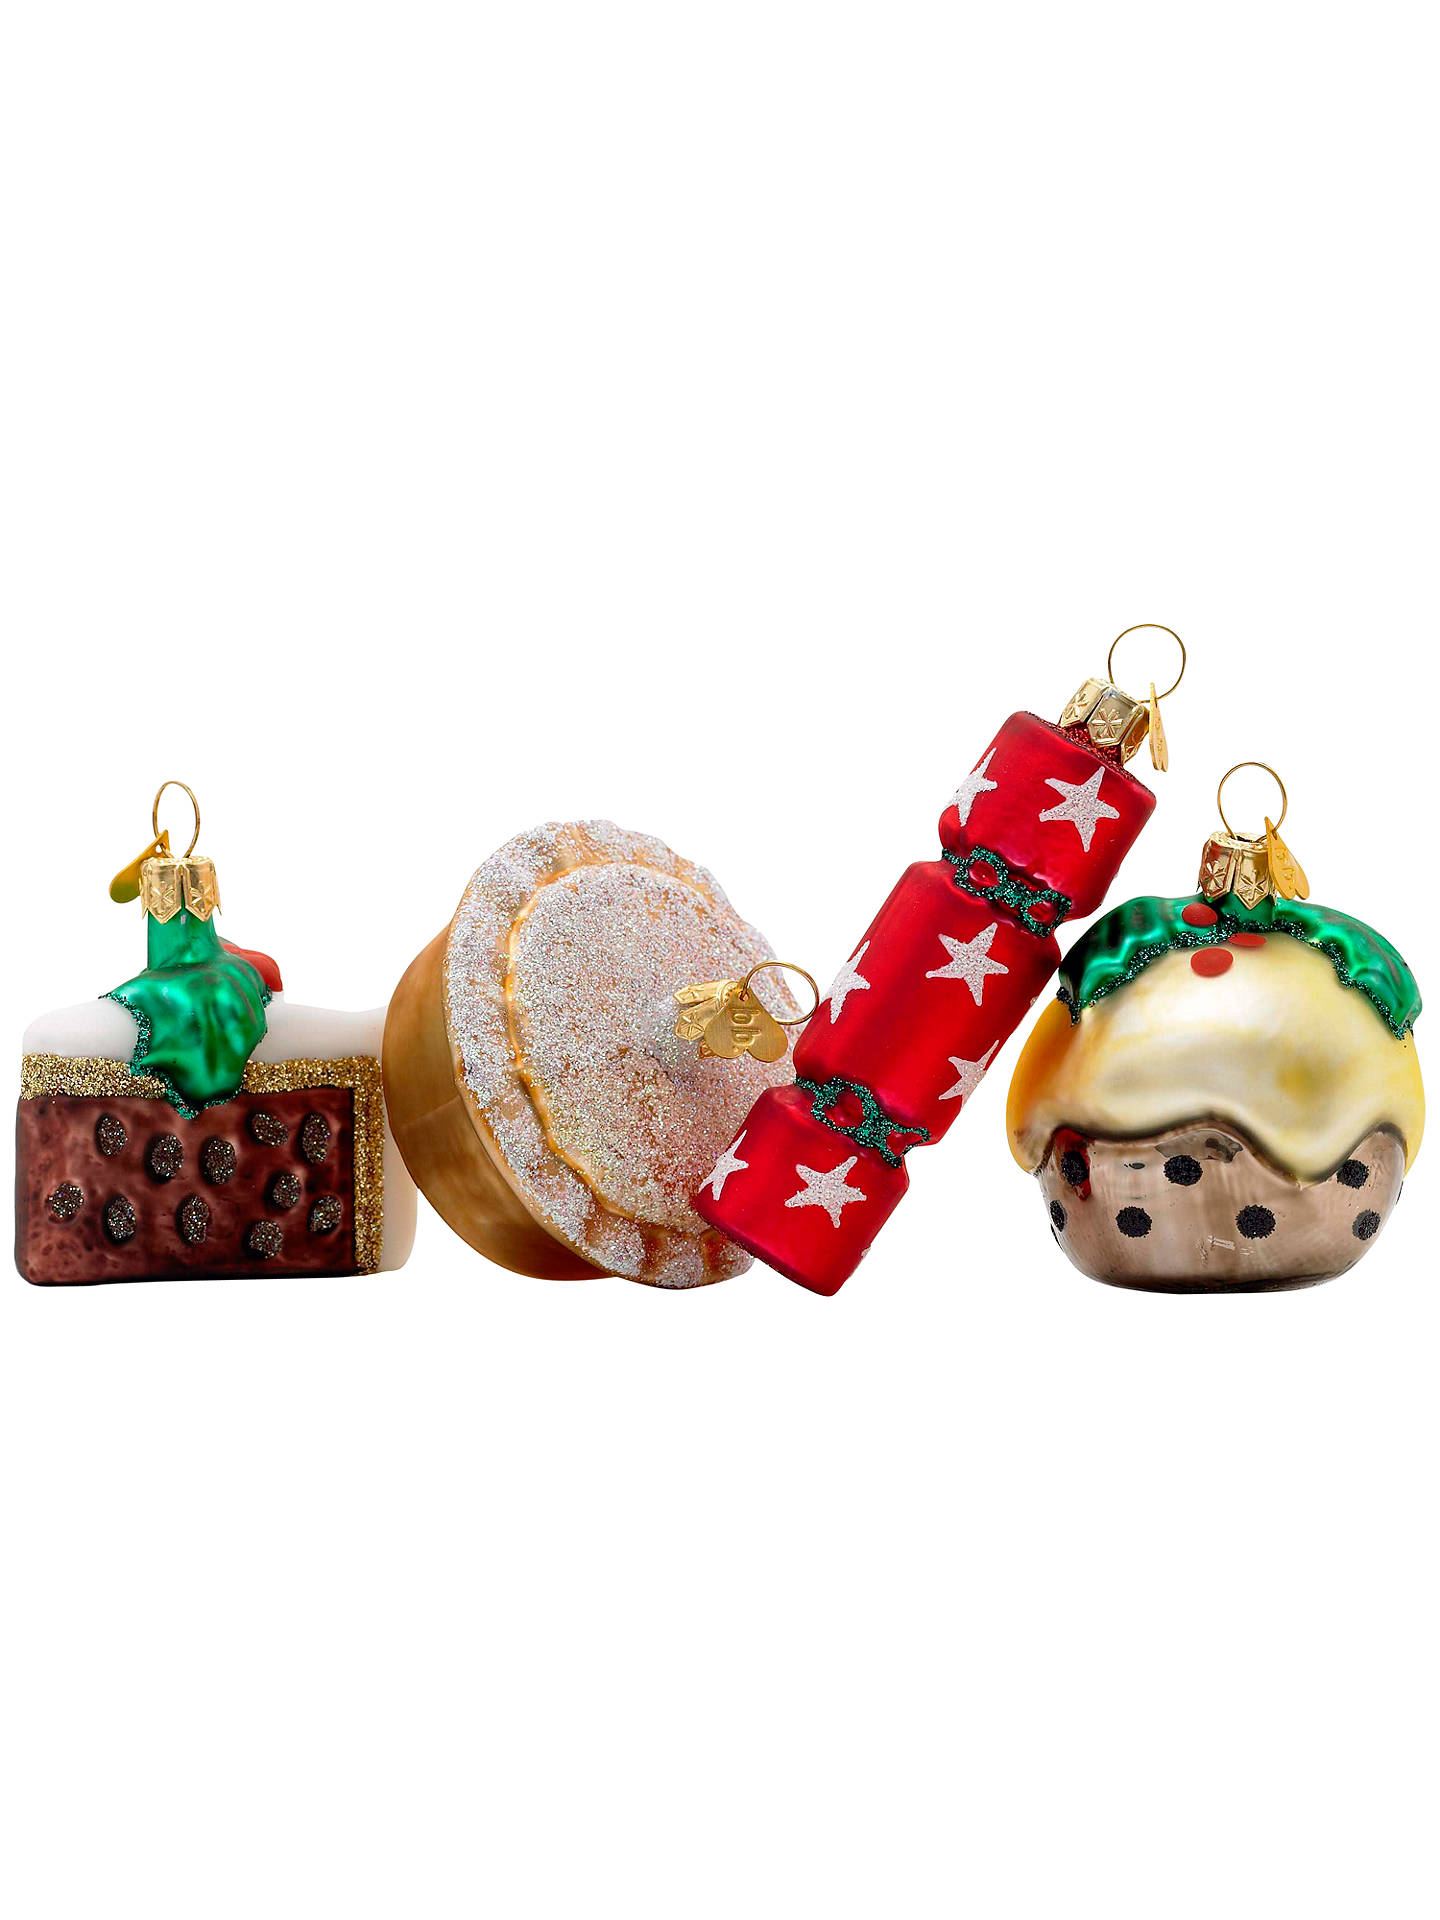 Buy Bombki Tourism Little English Christmas Ornaments, Set of 4 Online at johnlewis.com